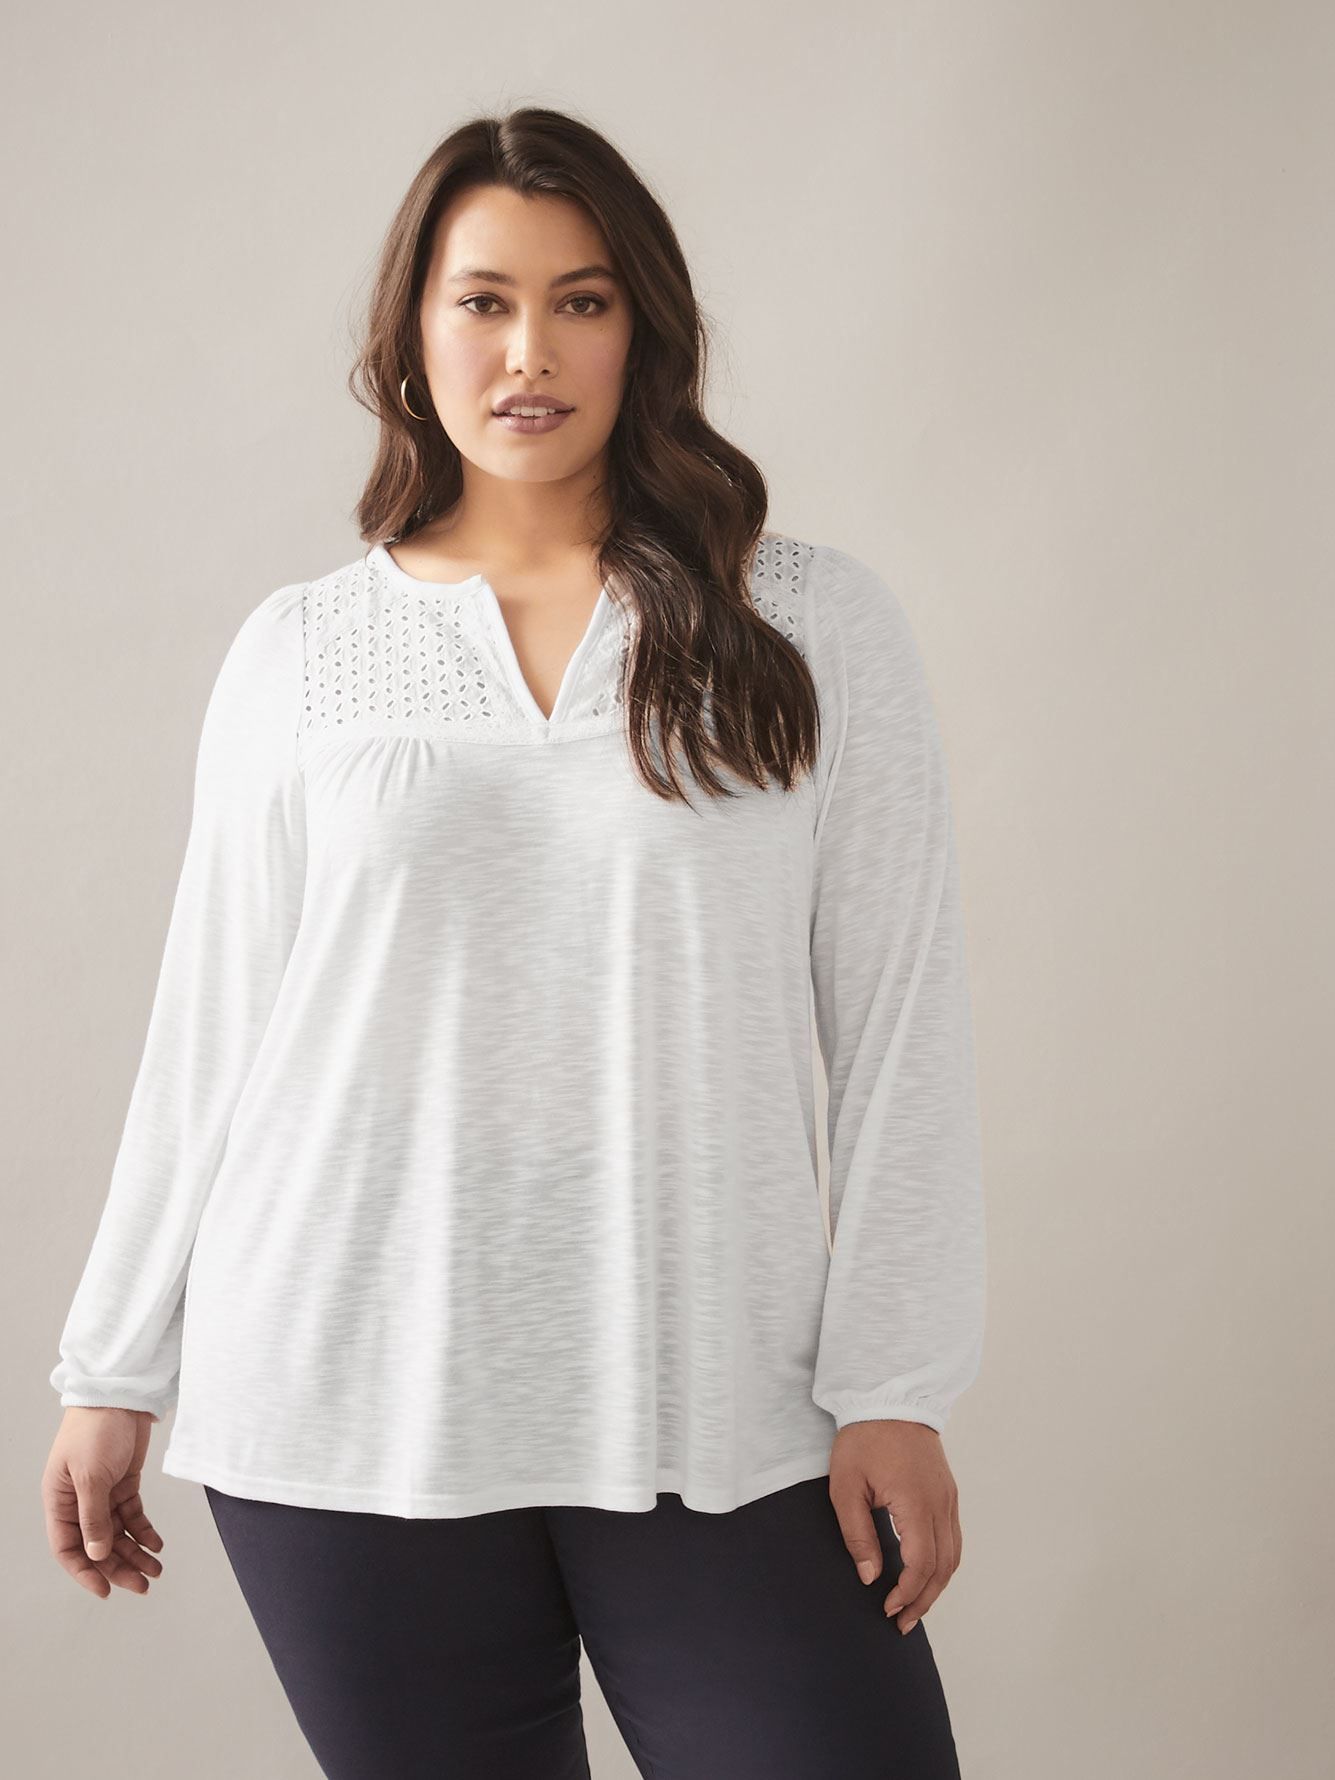 Solid Long Sleeve Top with Crochet Detail - In Every Story